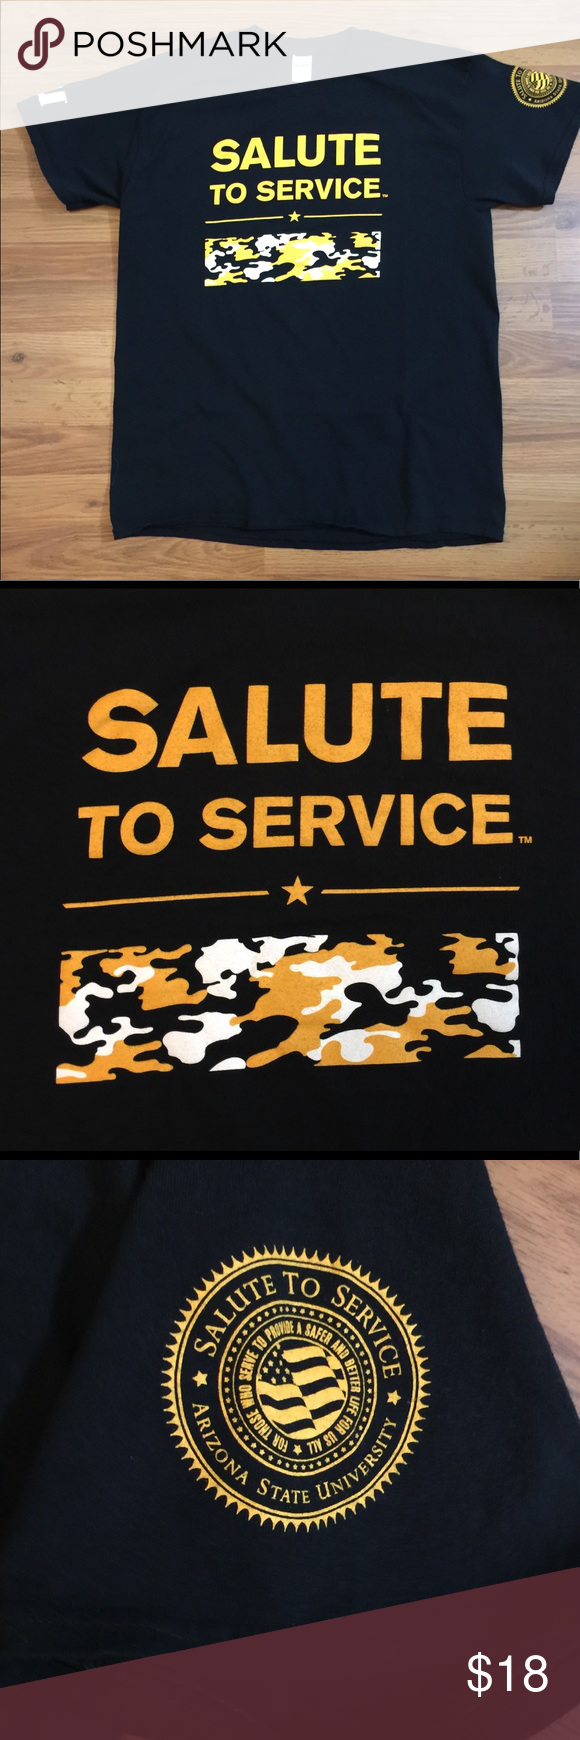 ASU Sun Devils  NCAA SALUTE TO SERVICE T Shirt! Shirt is made of cotton and features a Salute to Service logo screened on the front, ASU logo on the right sleeve end, ASU Salute to Service logo screened on the left sleeve end and Bound by Service Driven by Innovation logo screened on the back.  Shirt is a size L and measures 21 from arm pit to arm pit, 28 from shoulder to bottom in the front, 29 from shoulder to bottom in the back.  This item is gently used and is free from rips, tears, frayi #salutetoservice